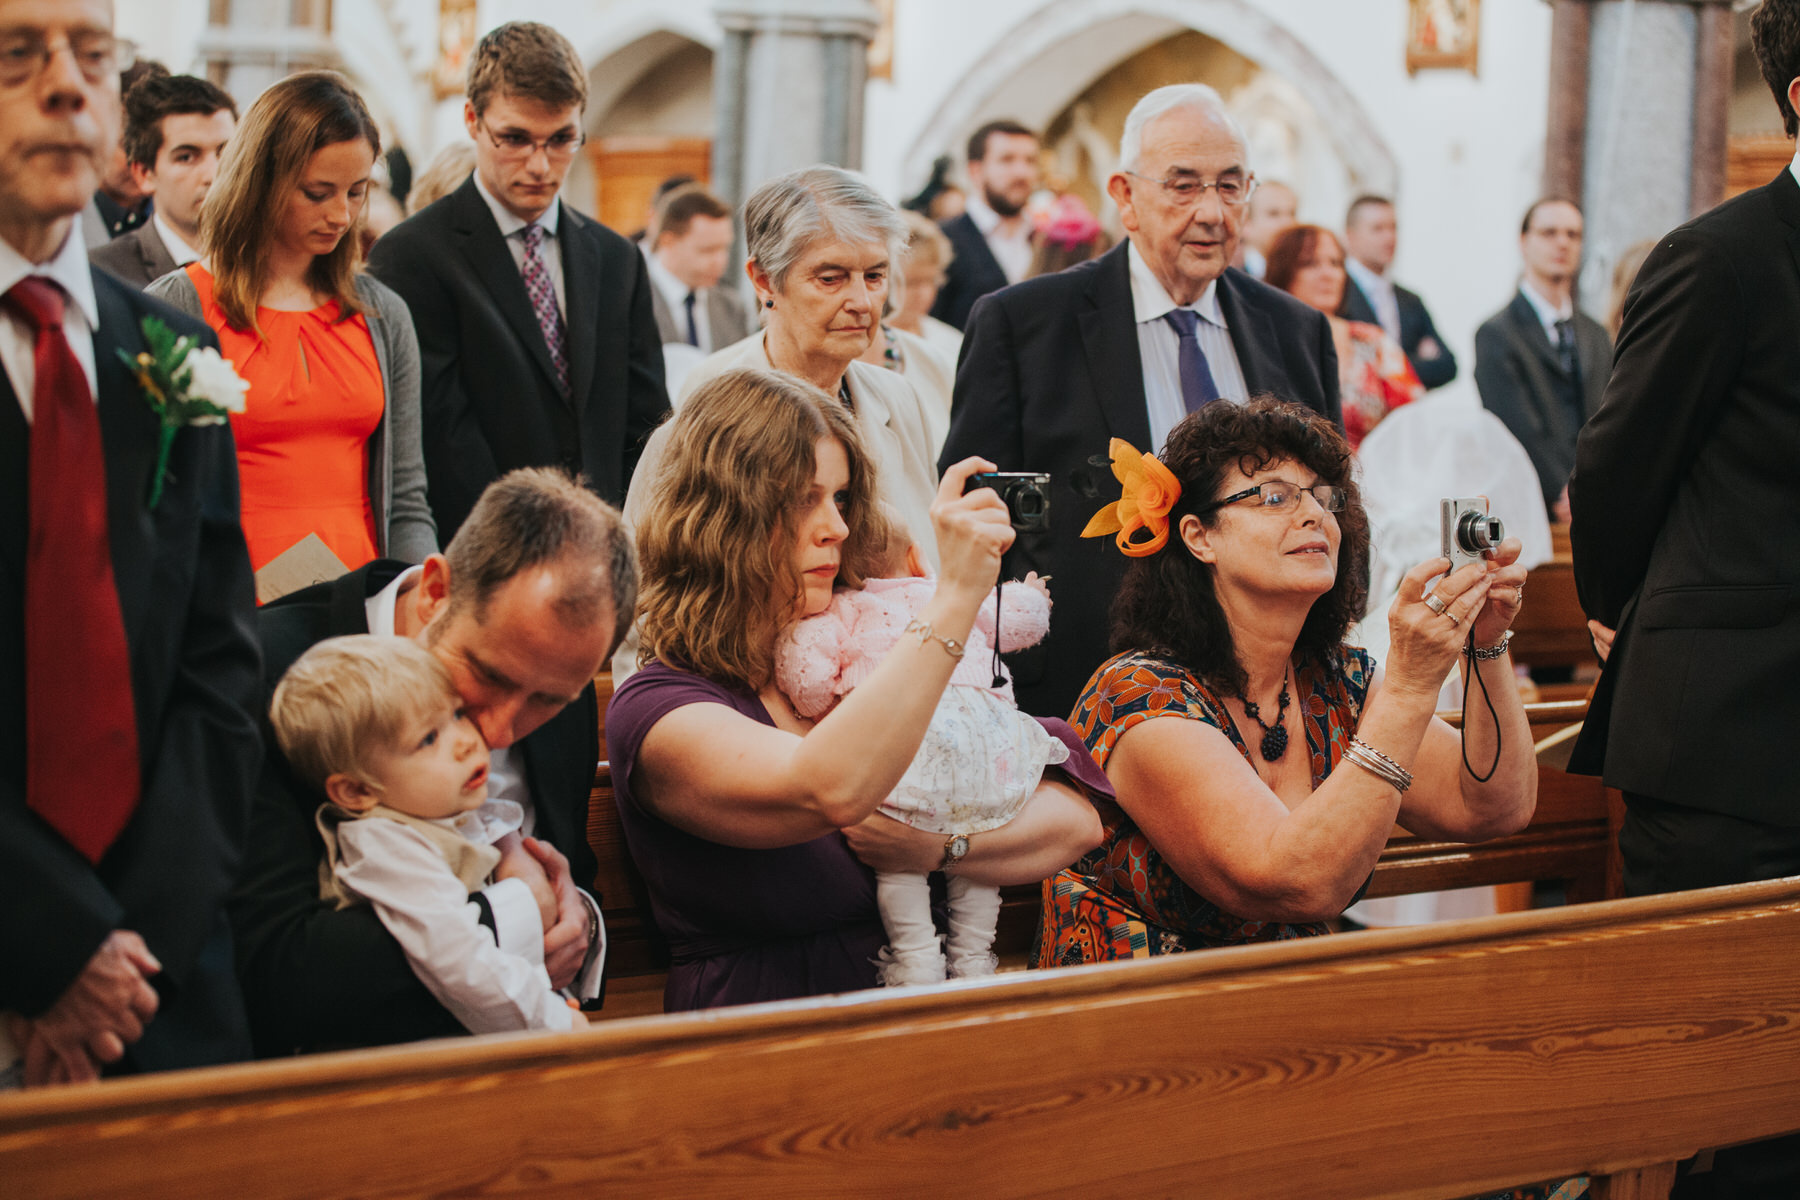 59 grooms family taking photos during Catholic Church wedding.jpg